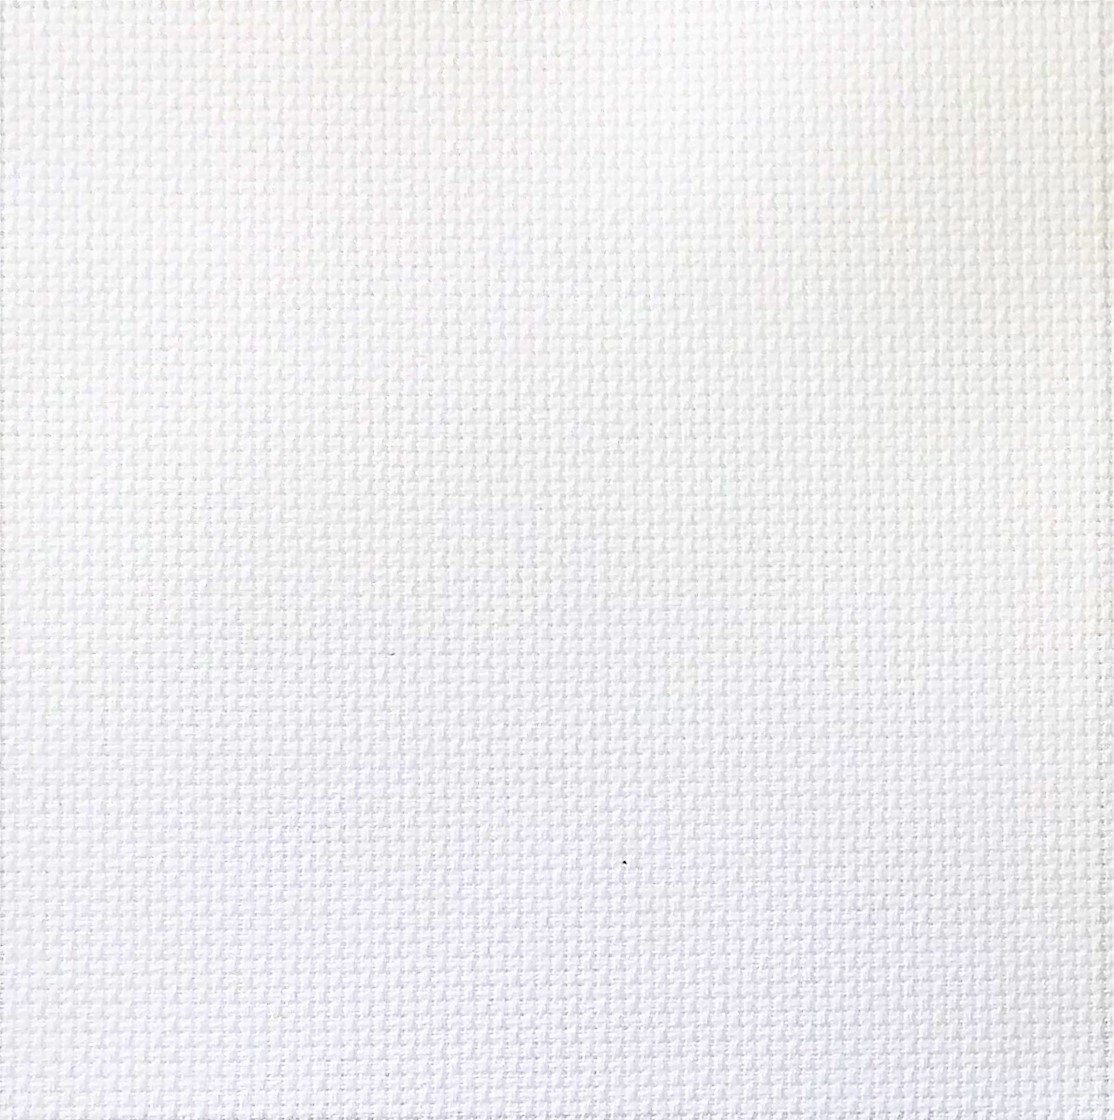 Aida Fabric 14 CT, 60 - White